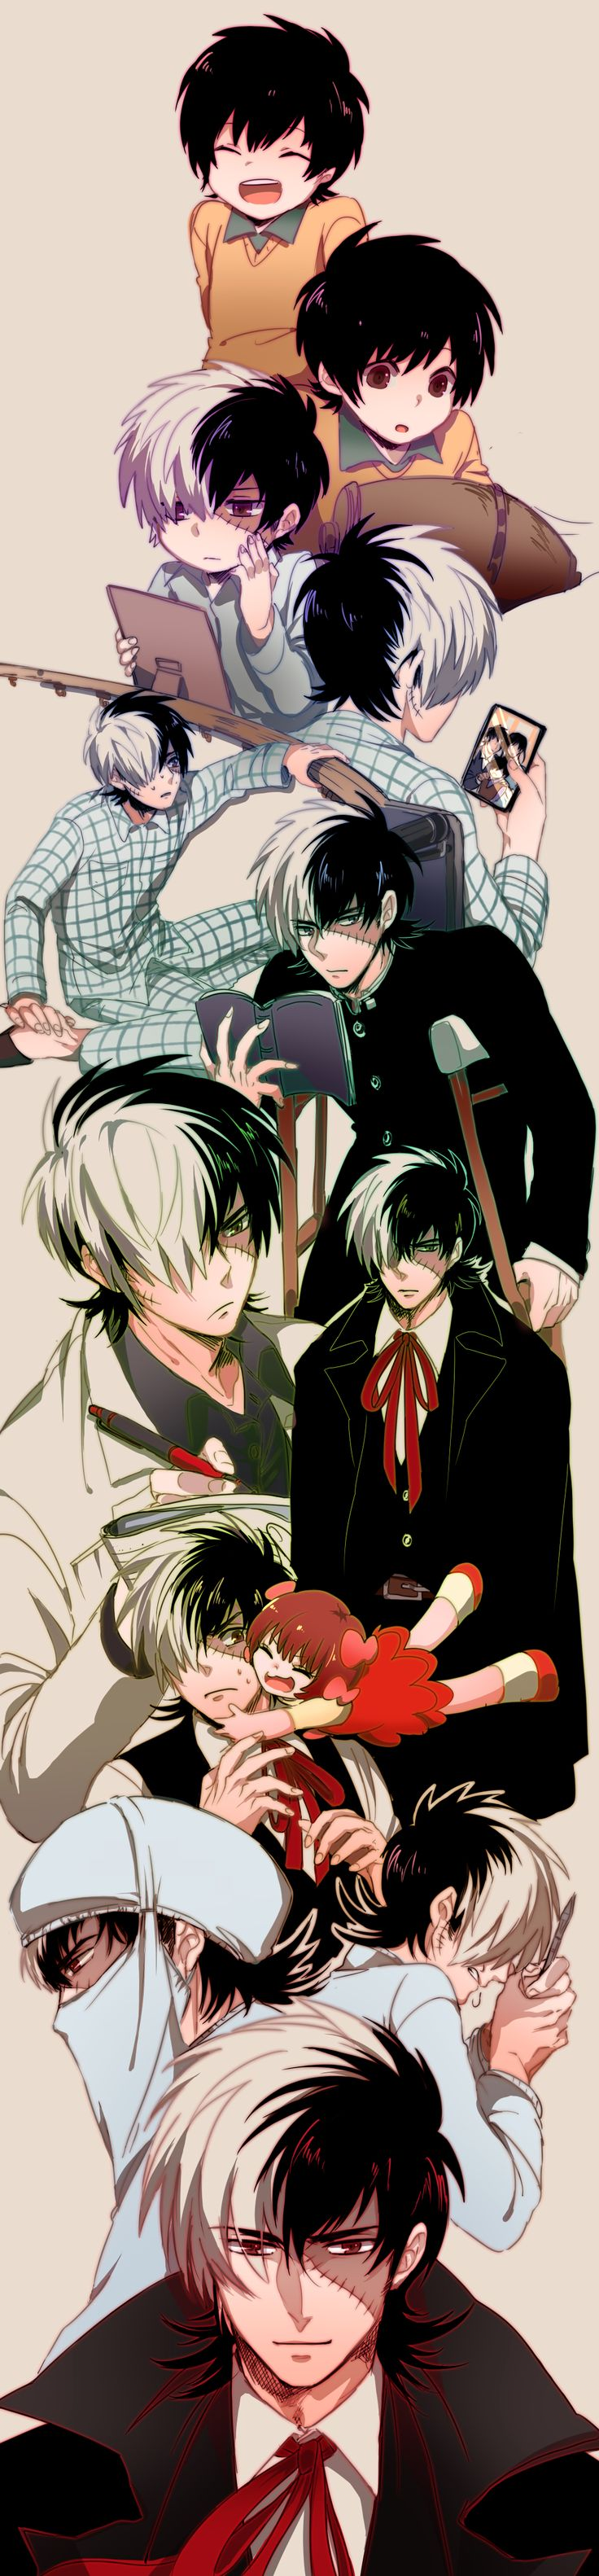 Black Jack #Anime #Manga Black Jack